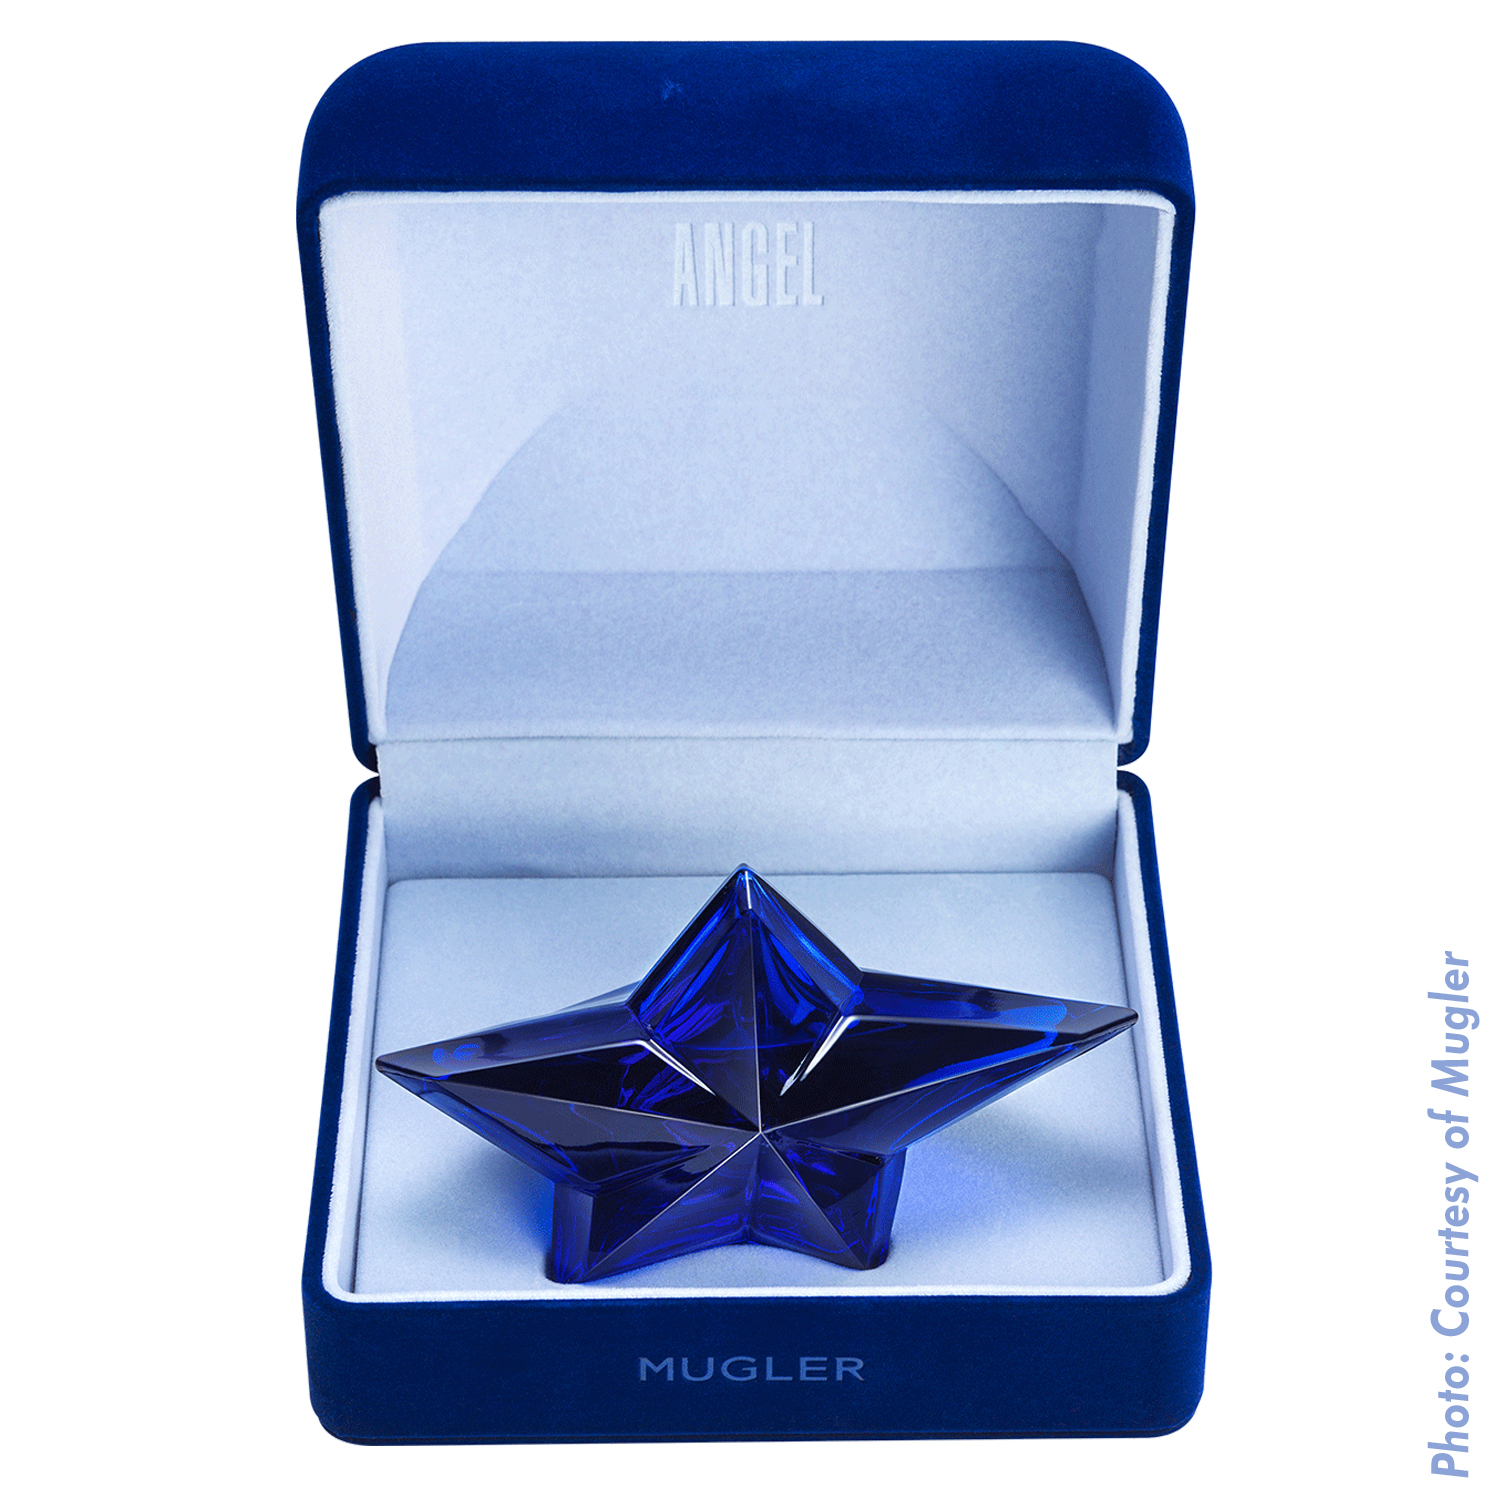 Thierry Mugler Angel Perfume Collector's Limited Edition Bottle 2017 Deep Blue Sapphire Star Velvet Box Side Display